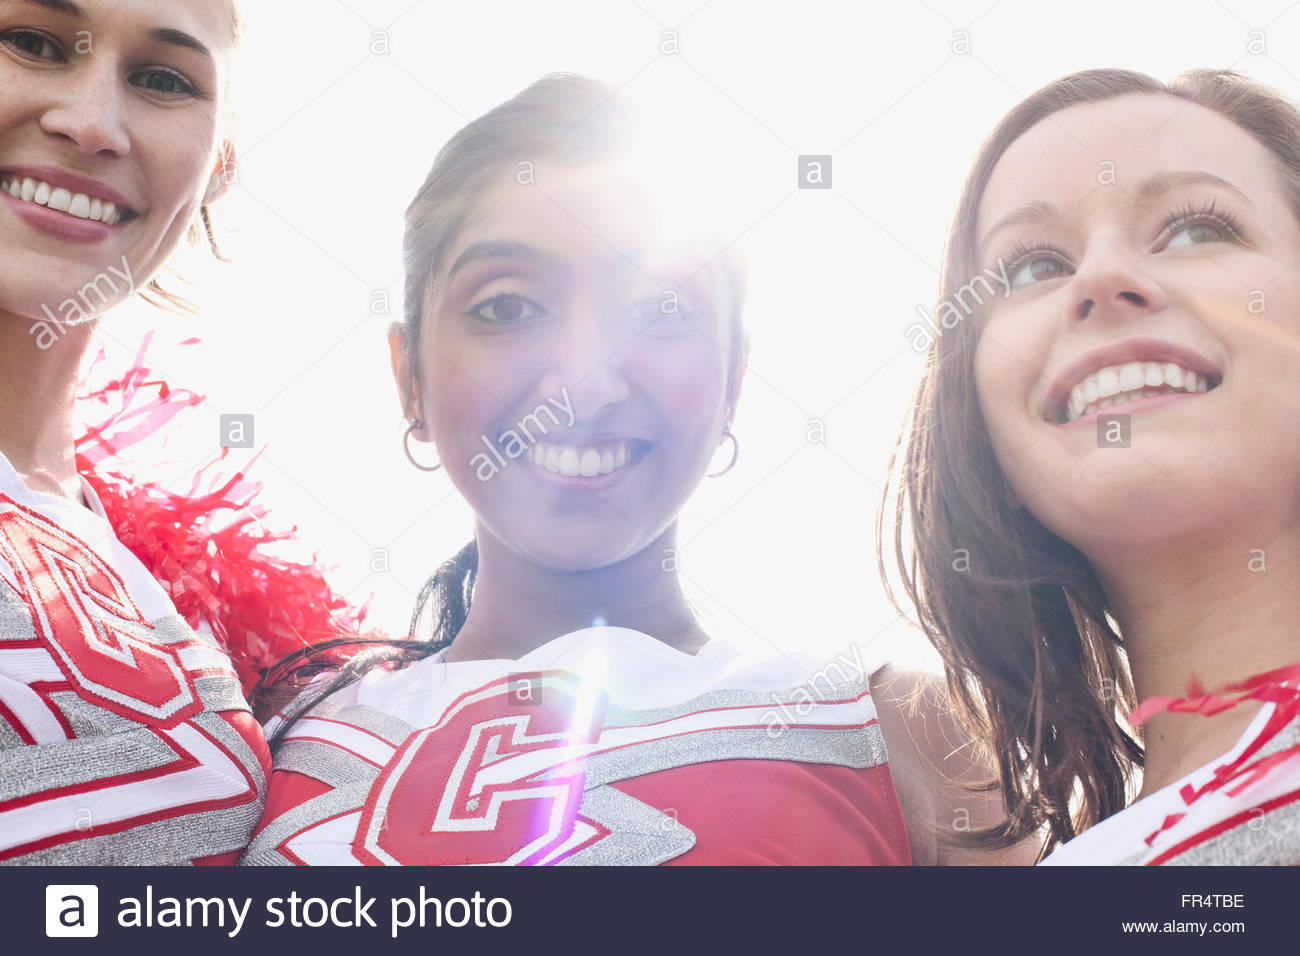 cheerleaders practicing together - Stock Image